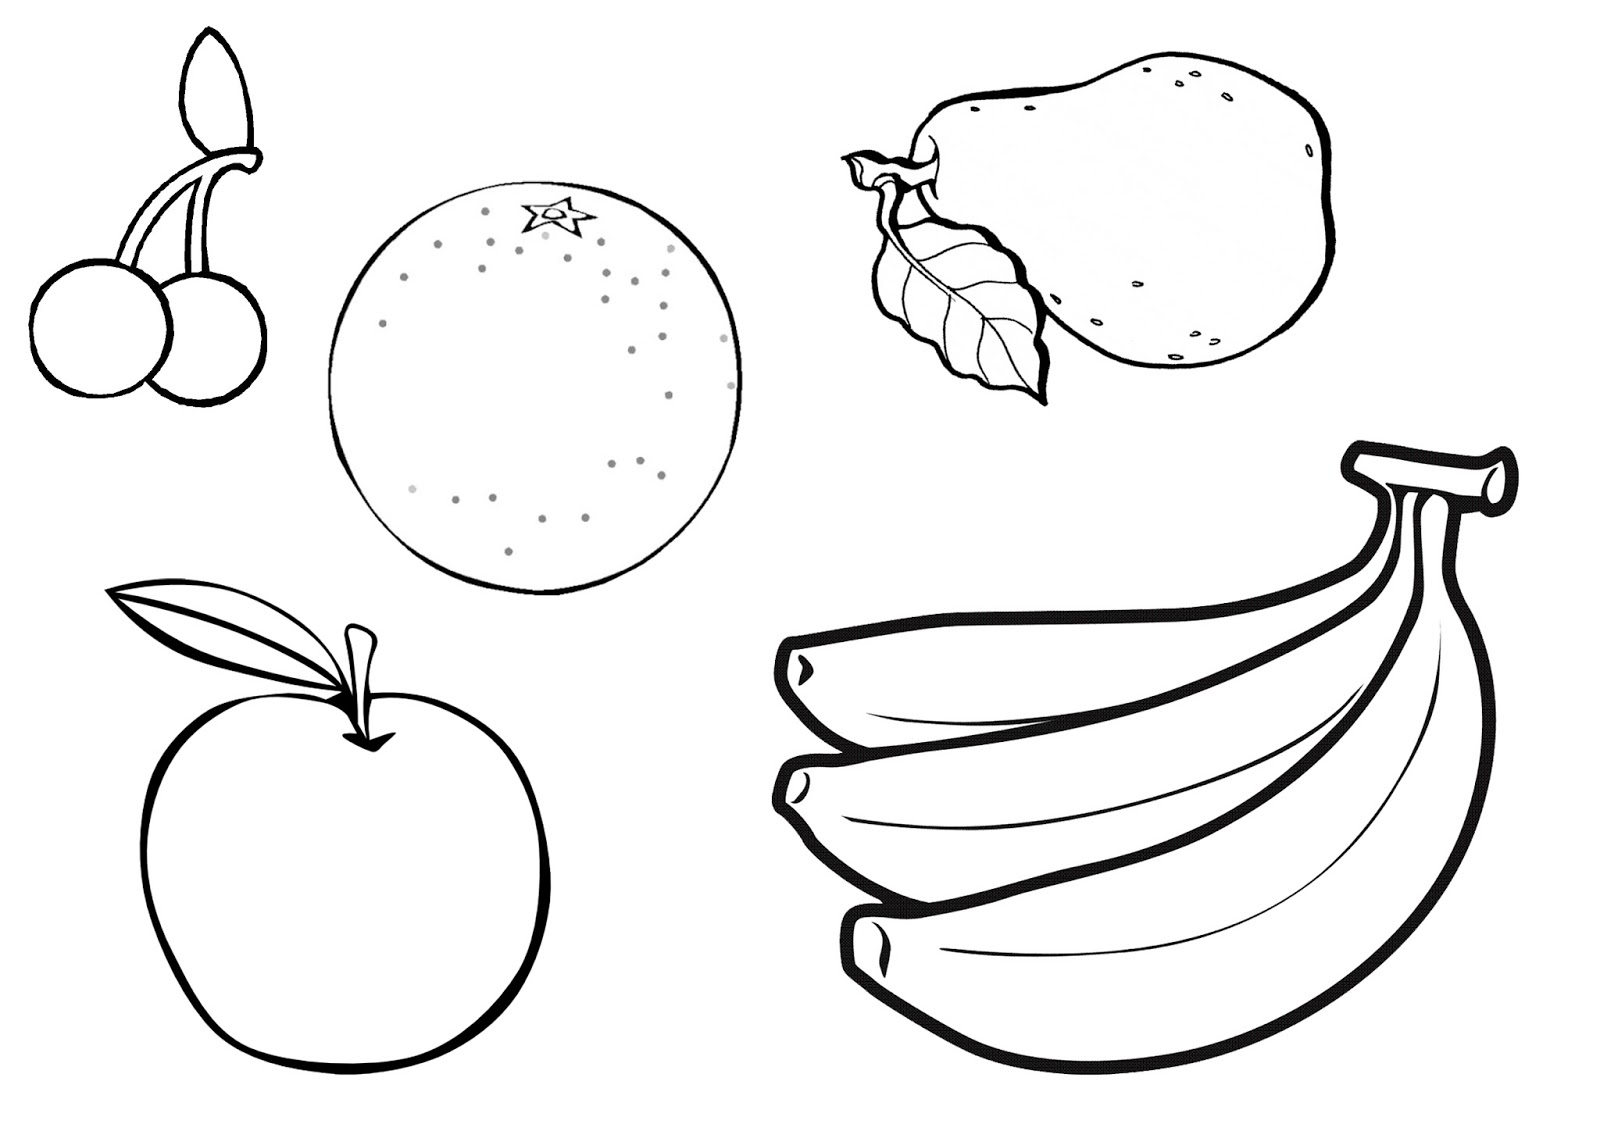 bowl of fruit drawing how to draw a realistic fruit bowl drawing bowl of fruit